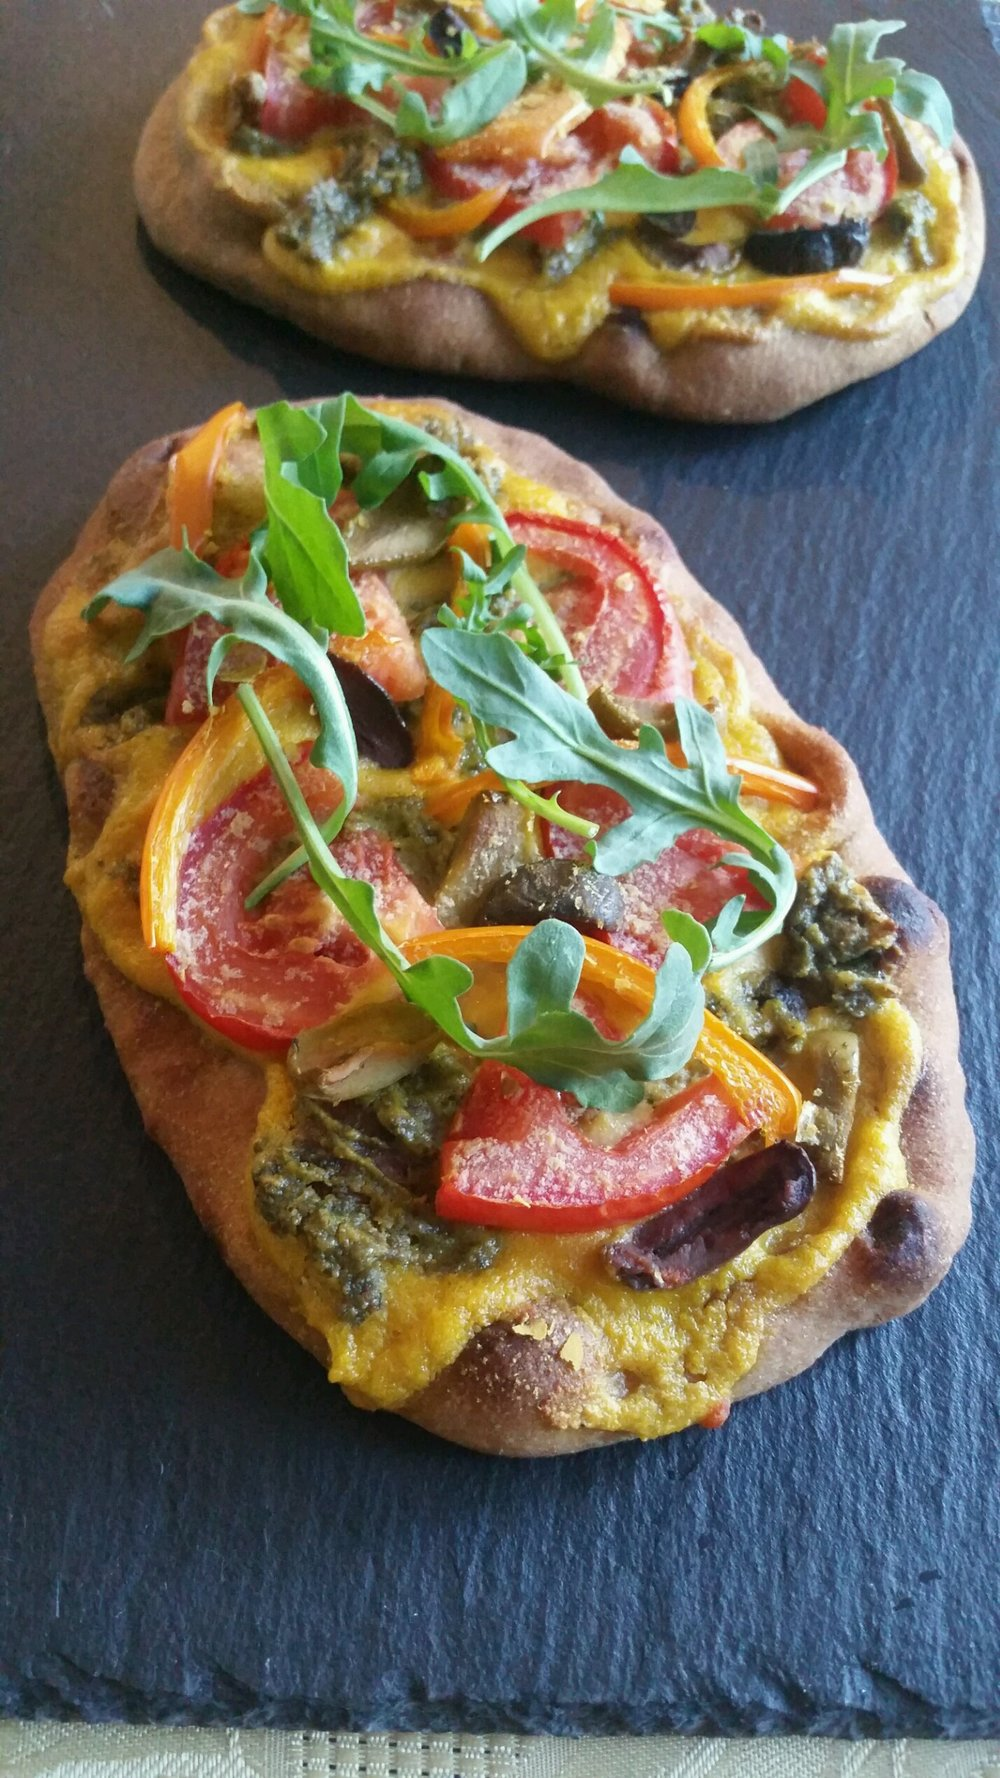 Vegetable pizza naan using cashew cream. This cheese is so versatile!